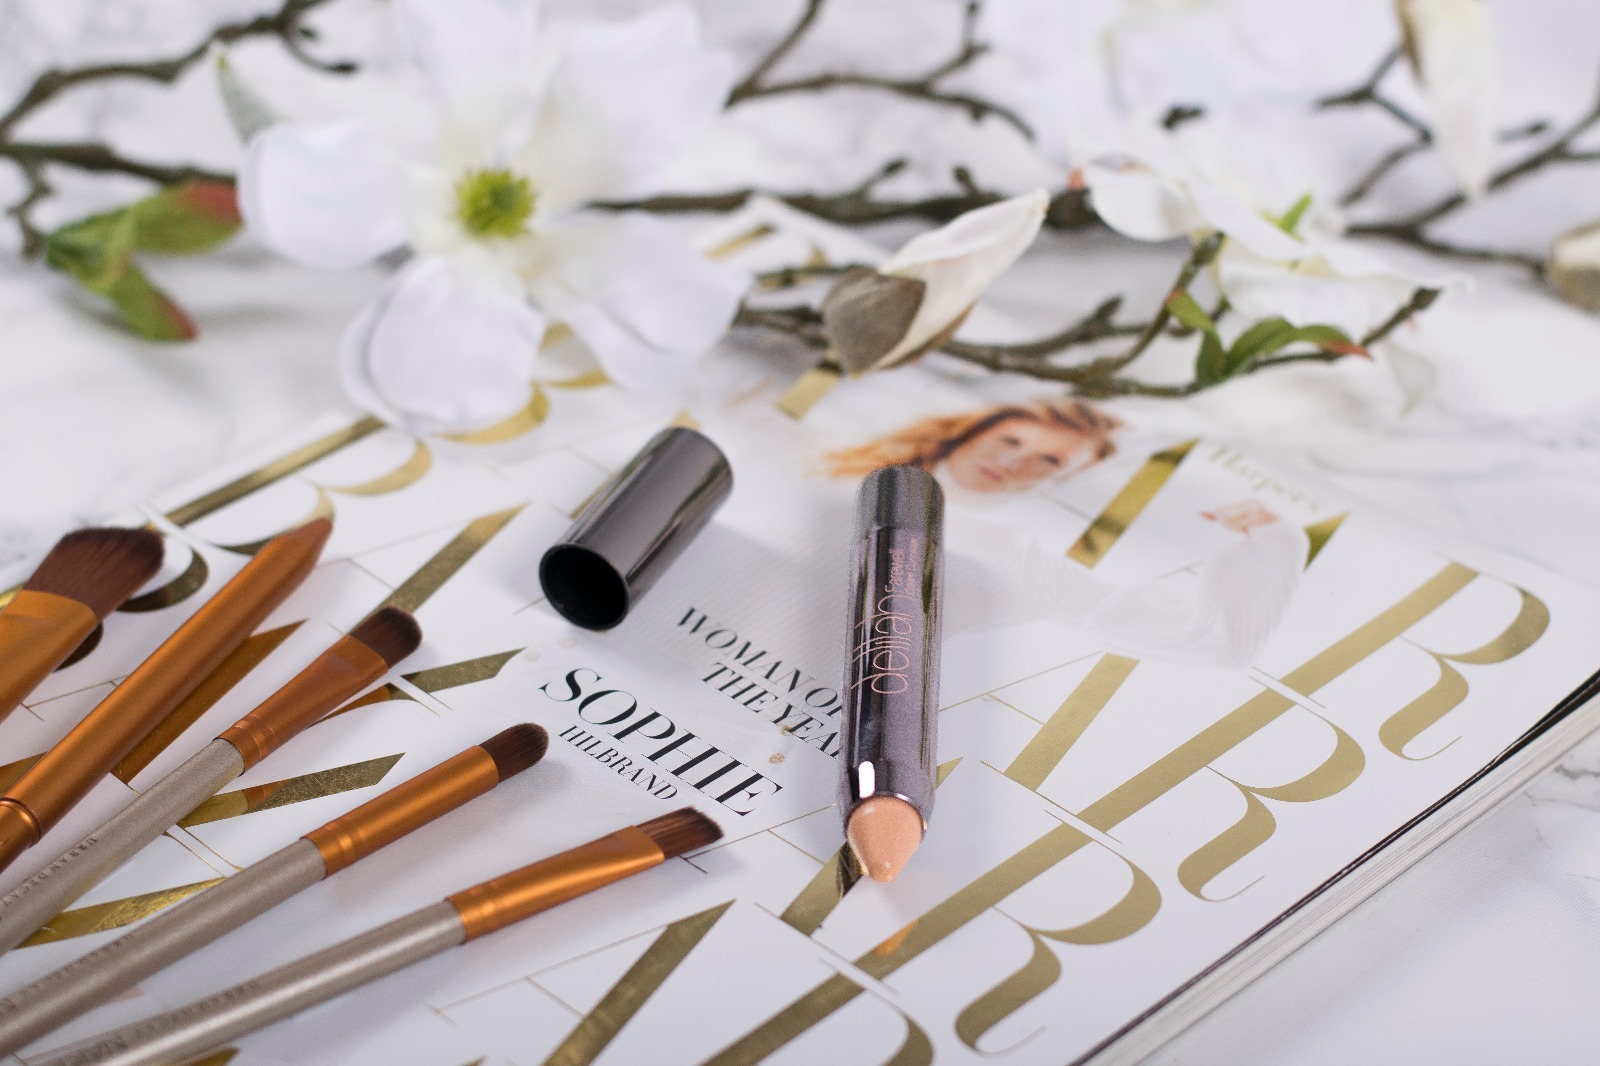 Delilah concealer review